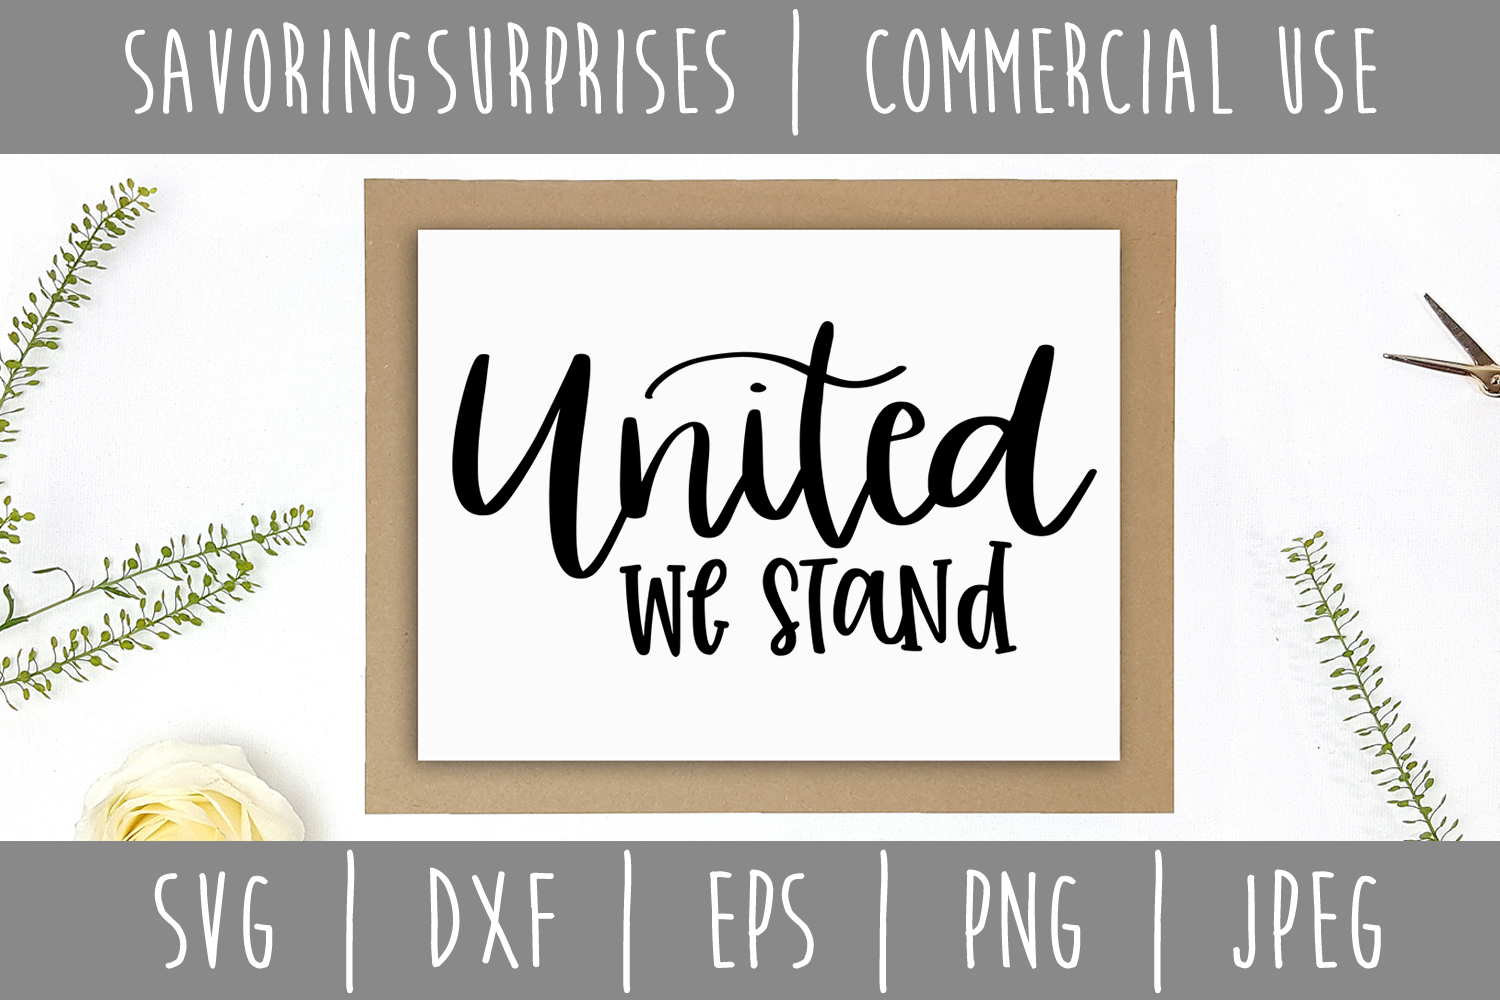 United We Stand SVG, DXF, EPS, PNG JPEG example image 3